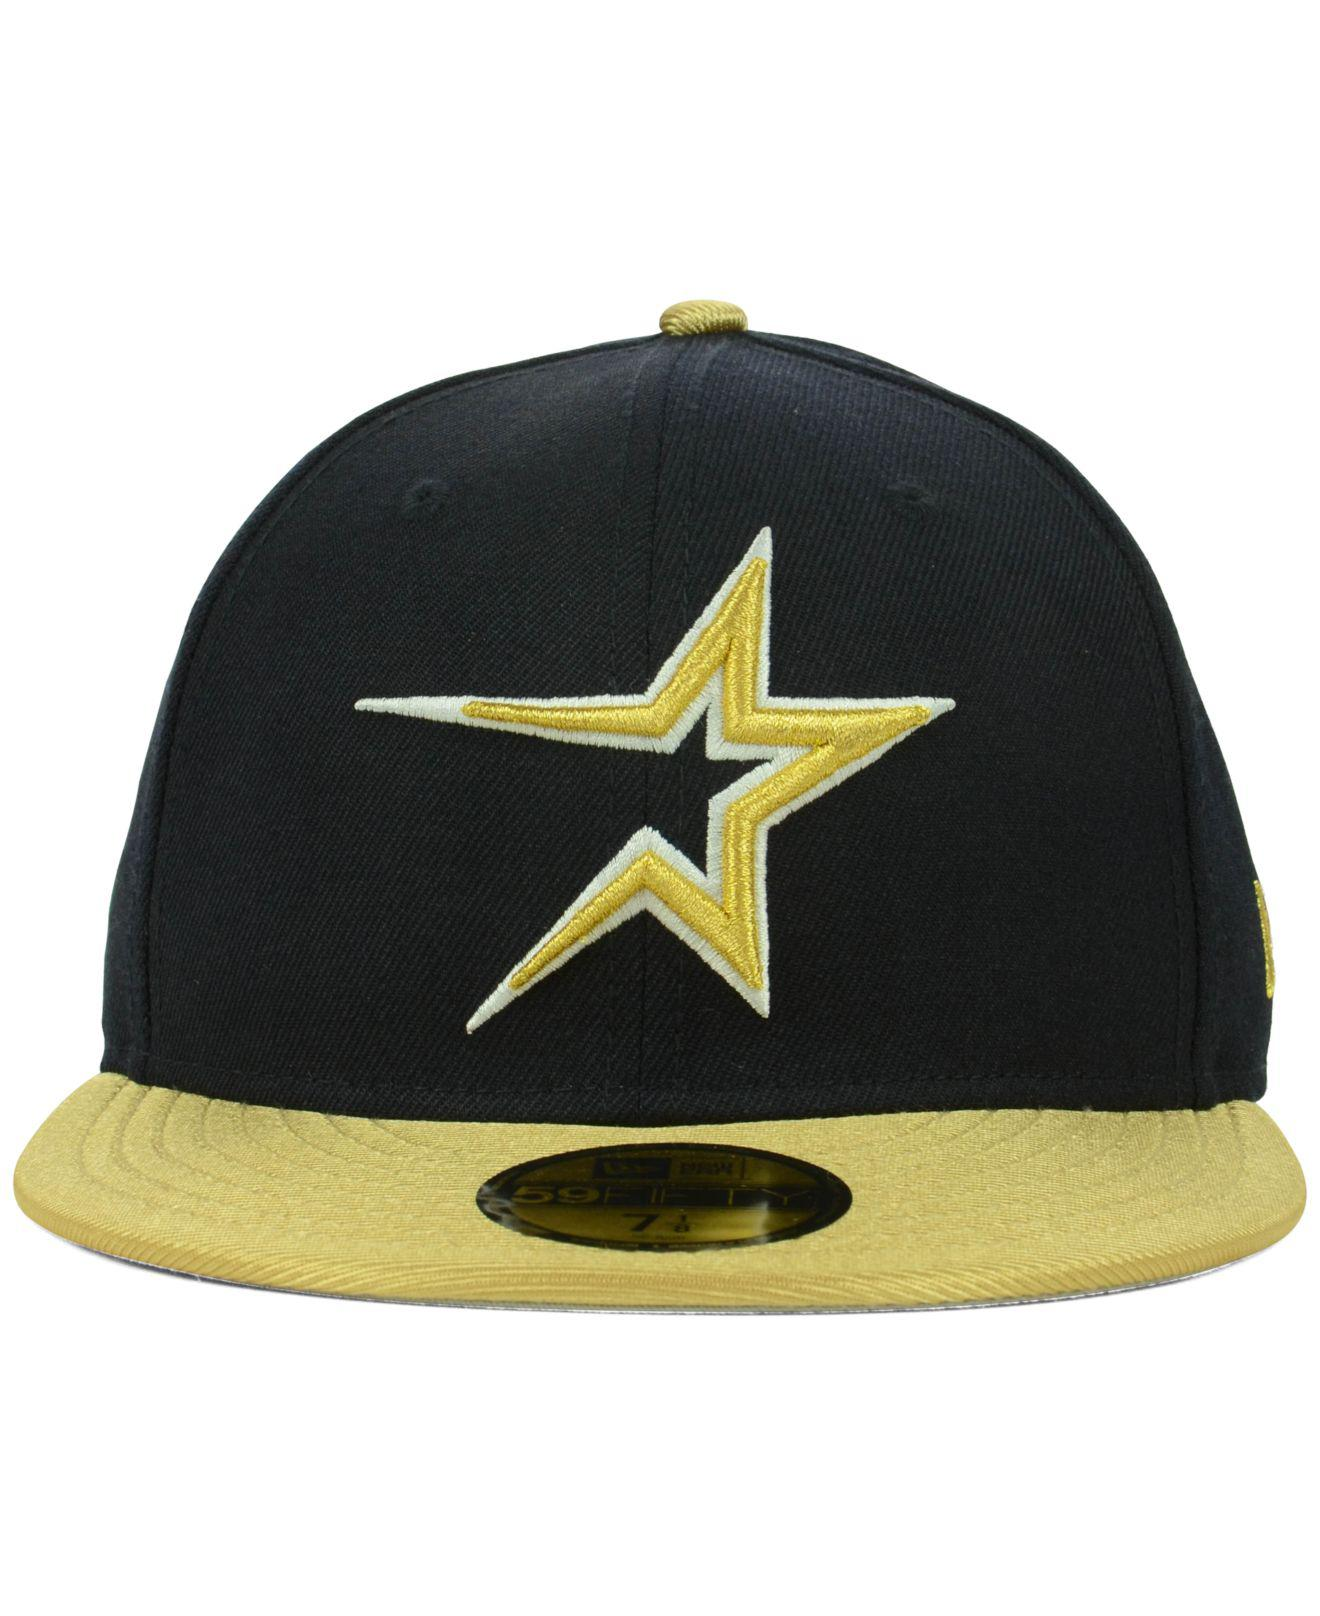 6b30e3a784d Lyst - KTZ Houston Astros Cooperstown 59fifty Cap in Blue for Men